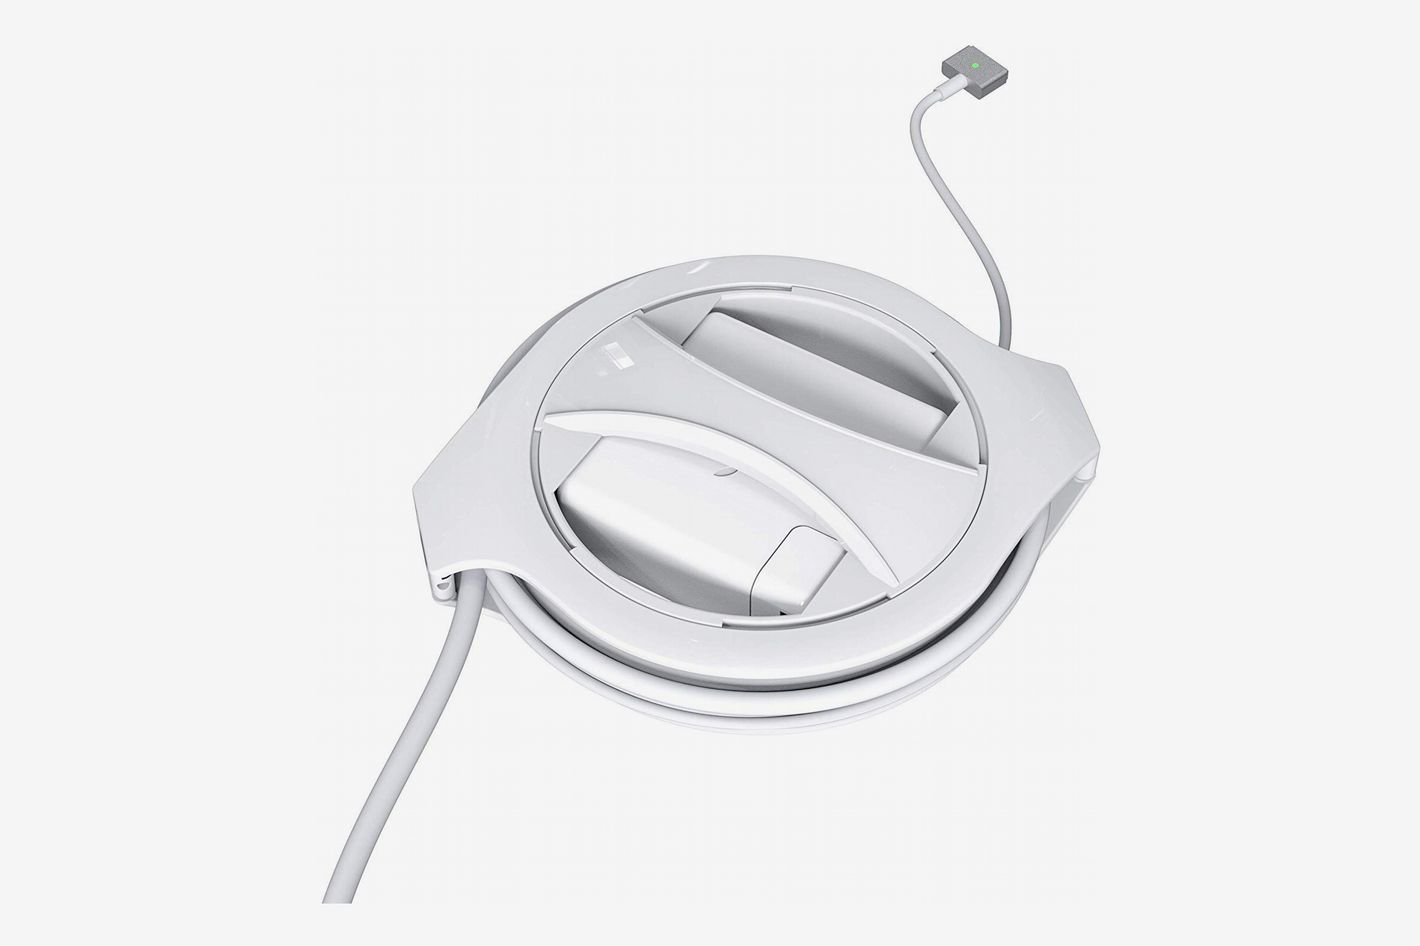 The Side Winder For MagSafe MacBook Charger